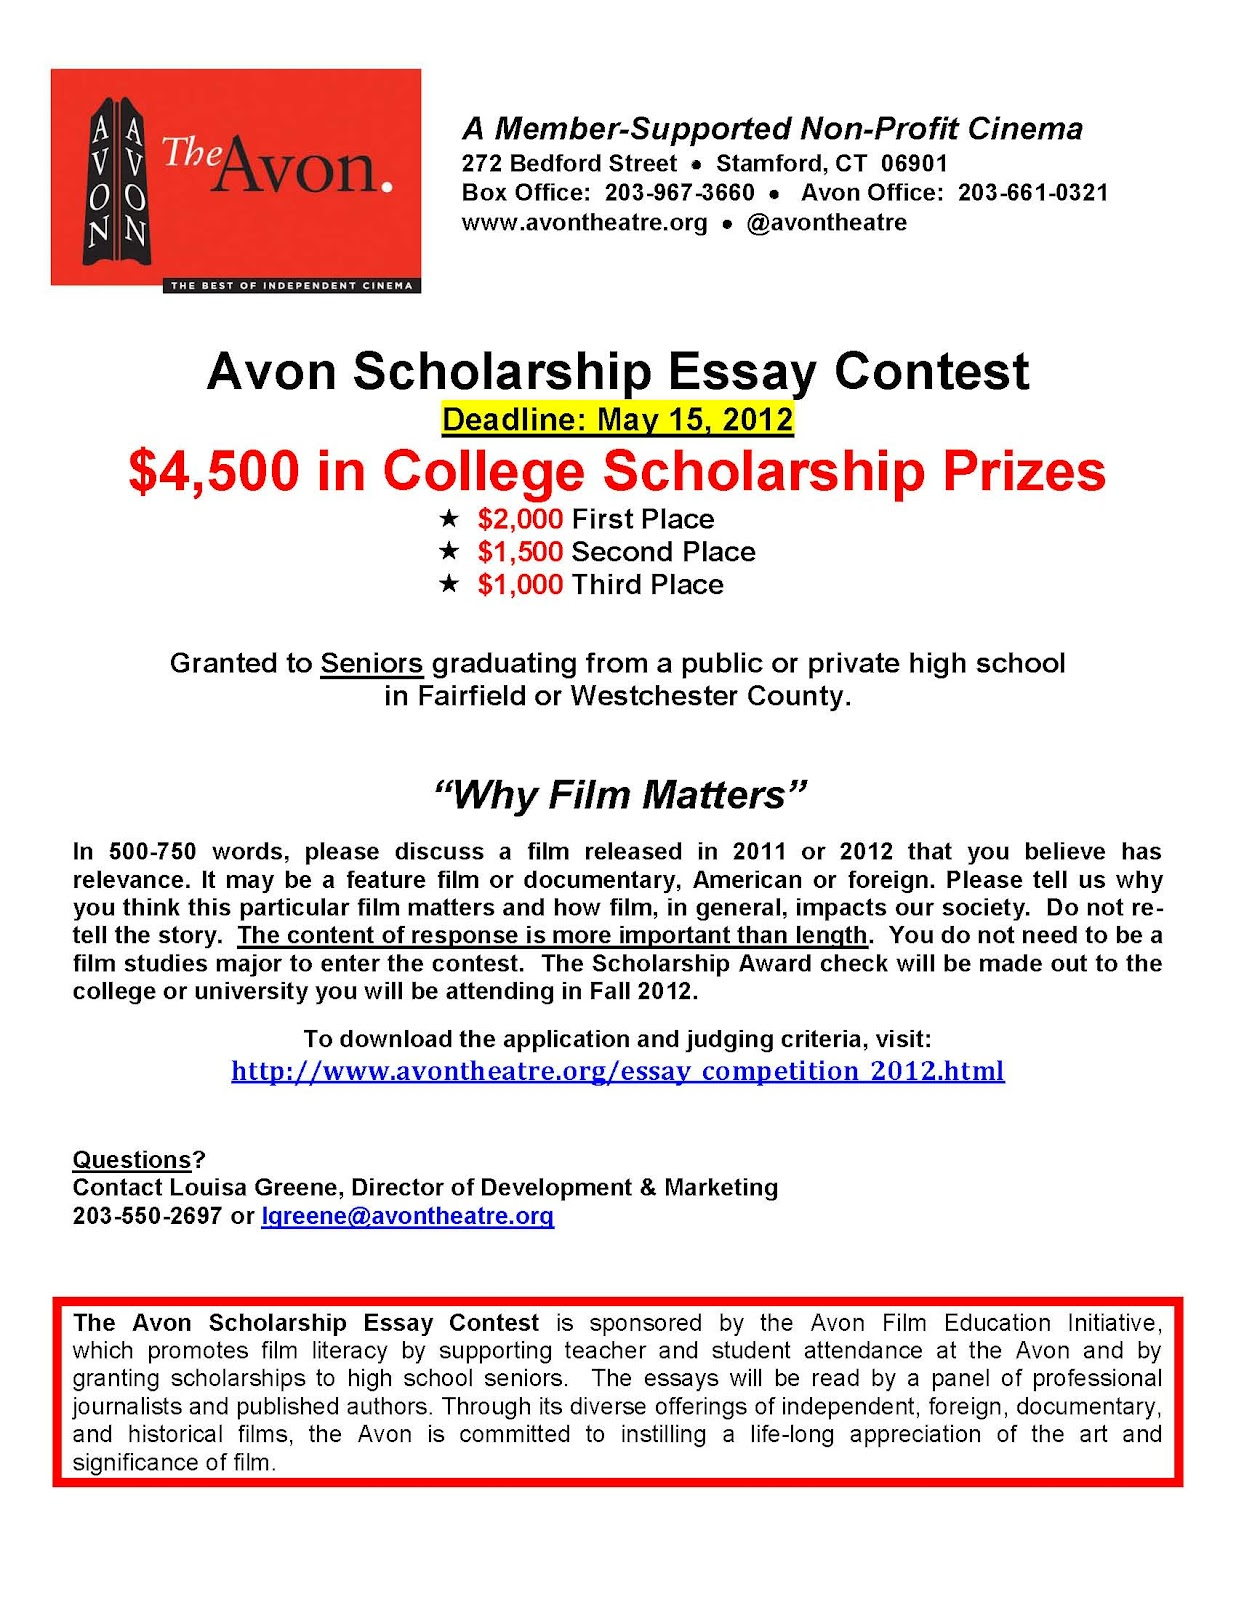 016 Avonscholarshipessaycontest2012flyer Essay Example Shocking Scholarships For High School Students 2018 2019 Full